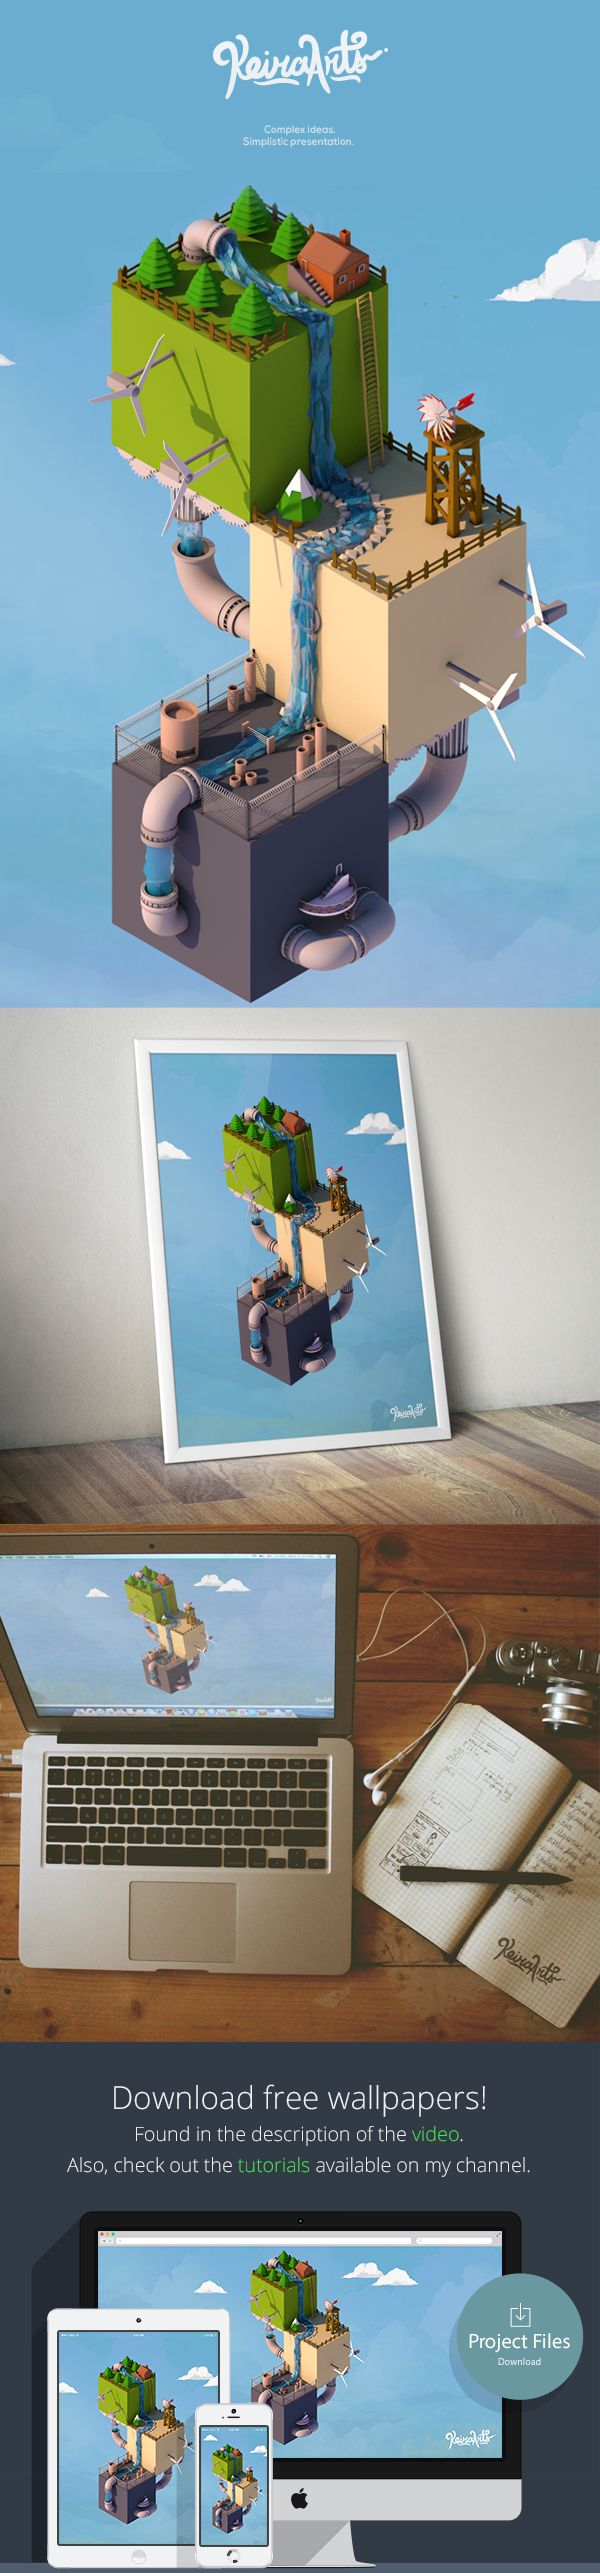 Low poly world - Isometric by Kiril Climson, via Behance